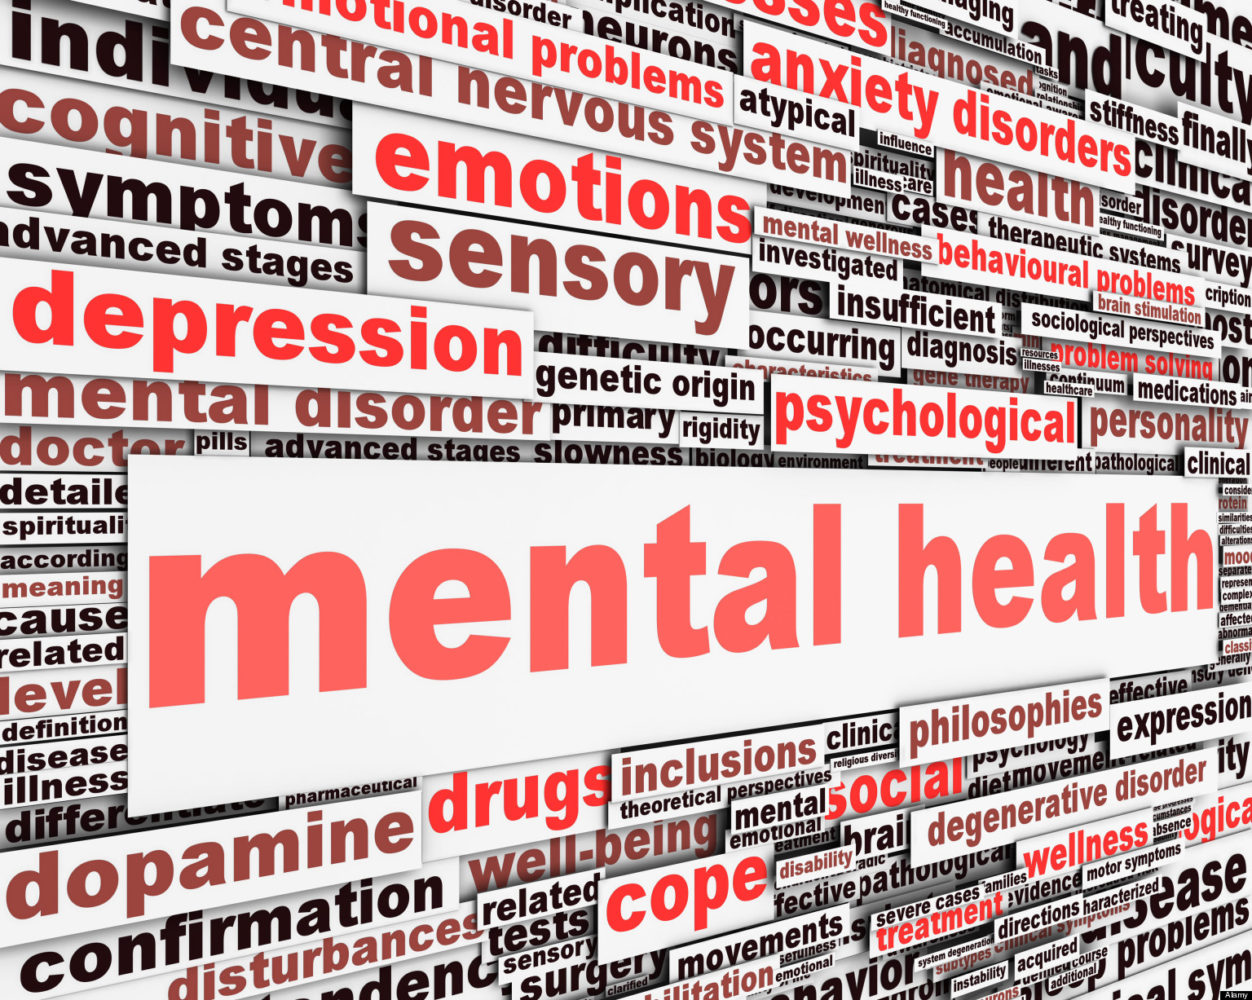 Department of Mental Health Receives $7 Million Grant